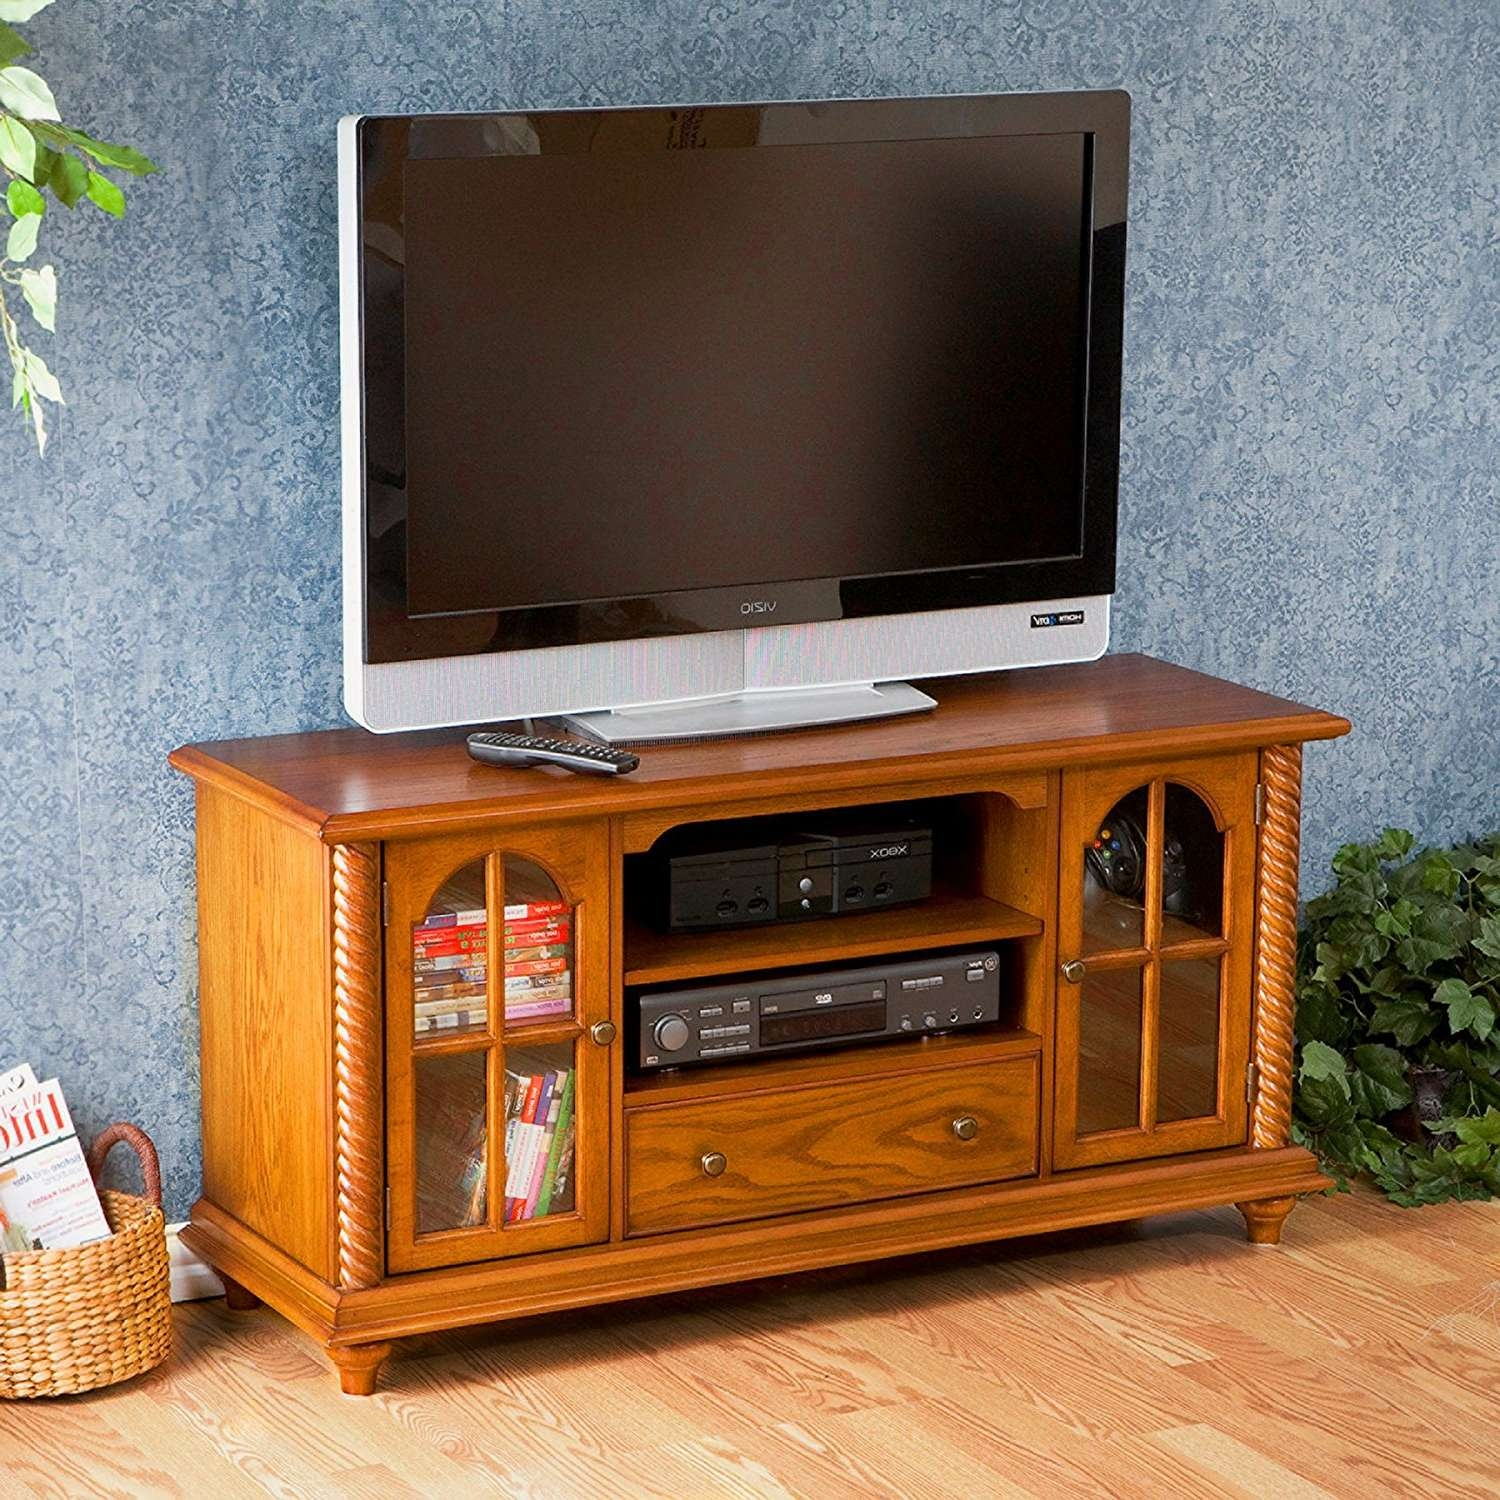 Innovative Designs Oak Tv Console | Marku Home Design Intended For Oak Tv Cabinets For Flat Screens (View 12 of 20)